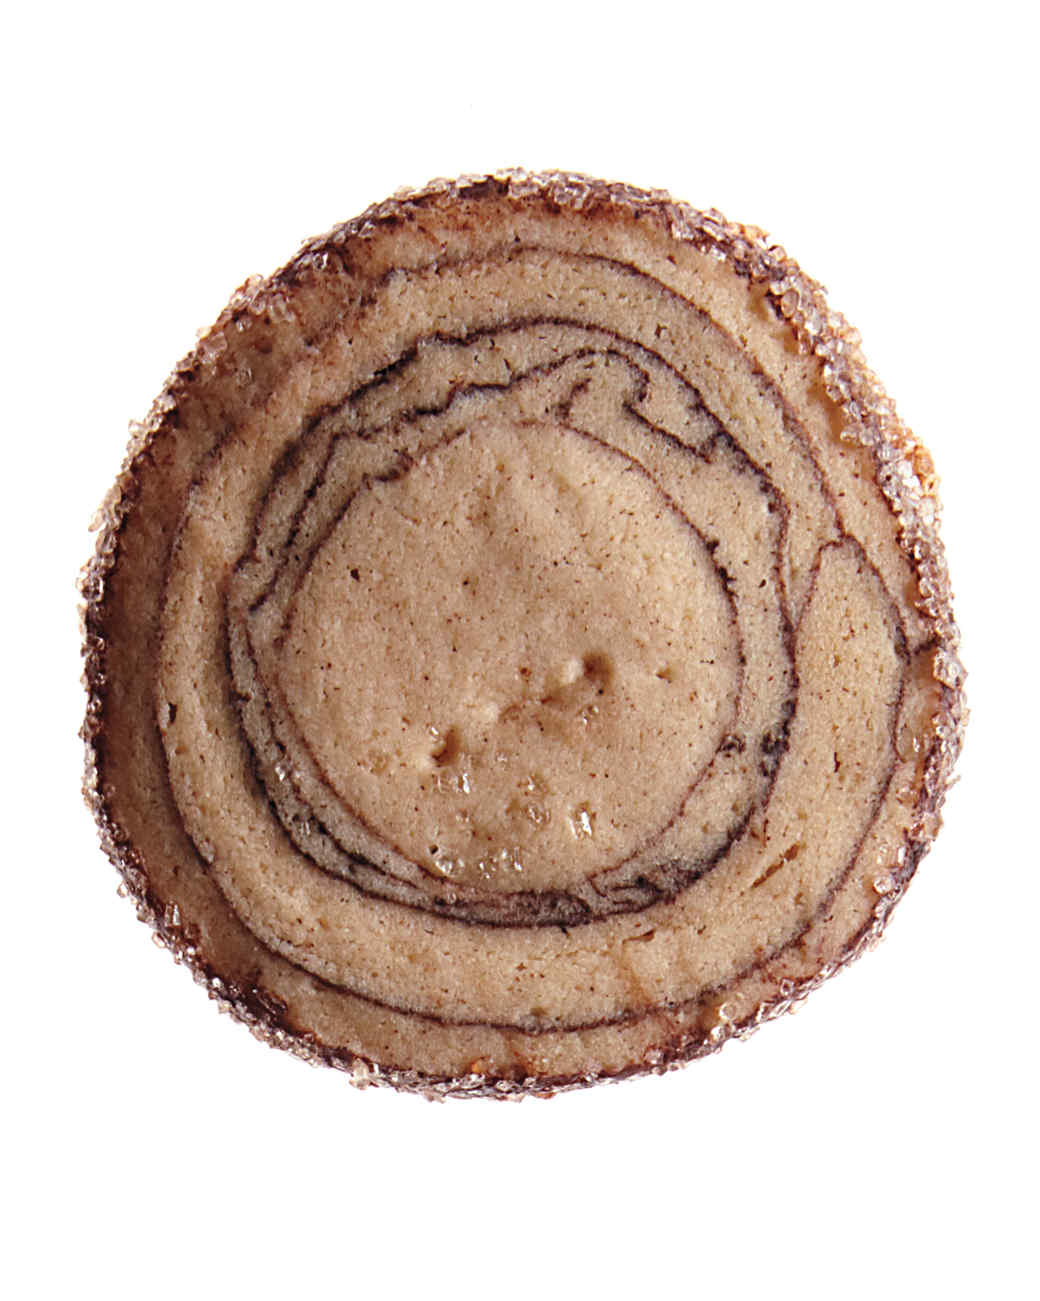 cinnamon-log-slice-0223-d112434.jpg